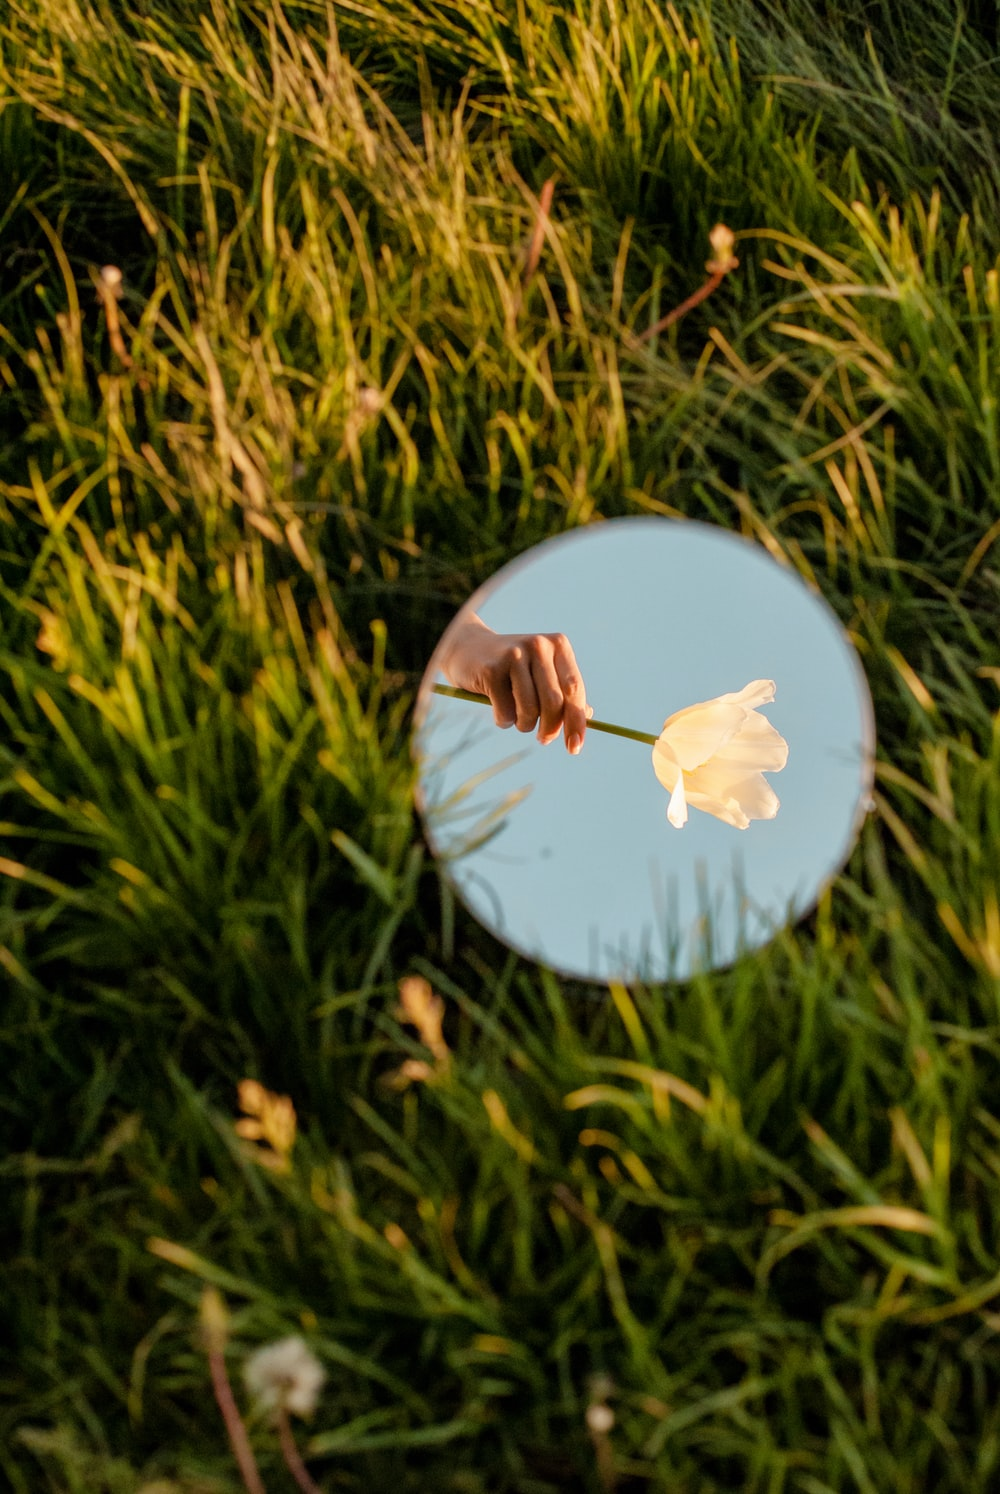 white and blue floral round ornament on green grass